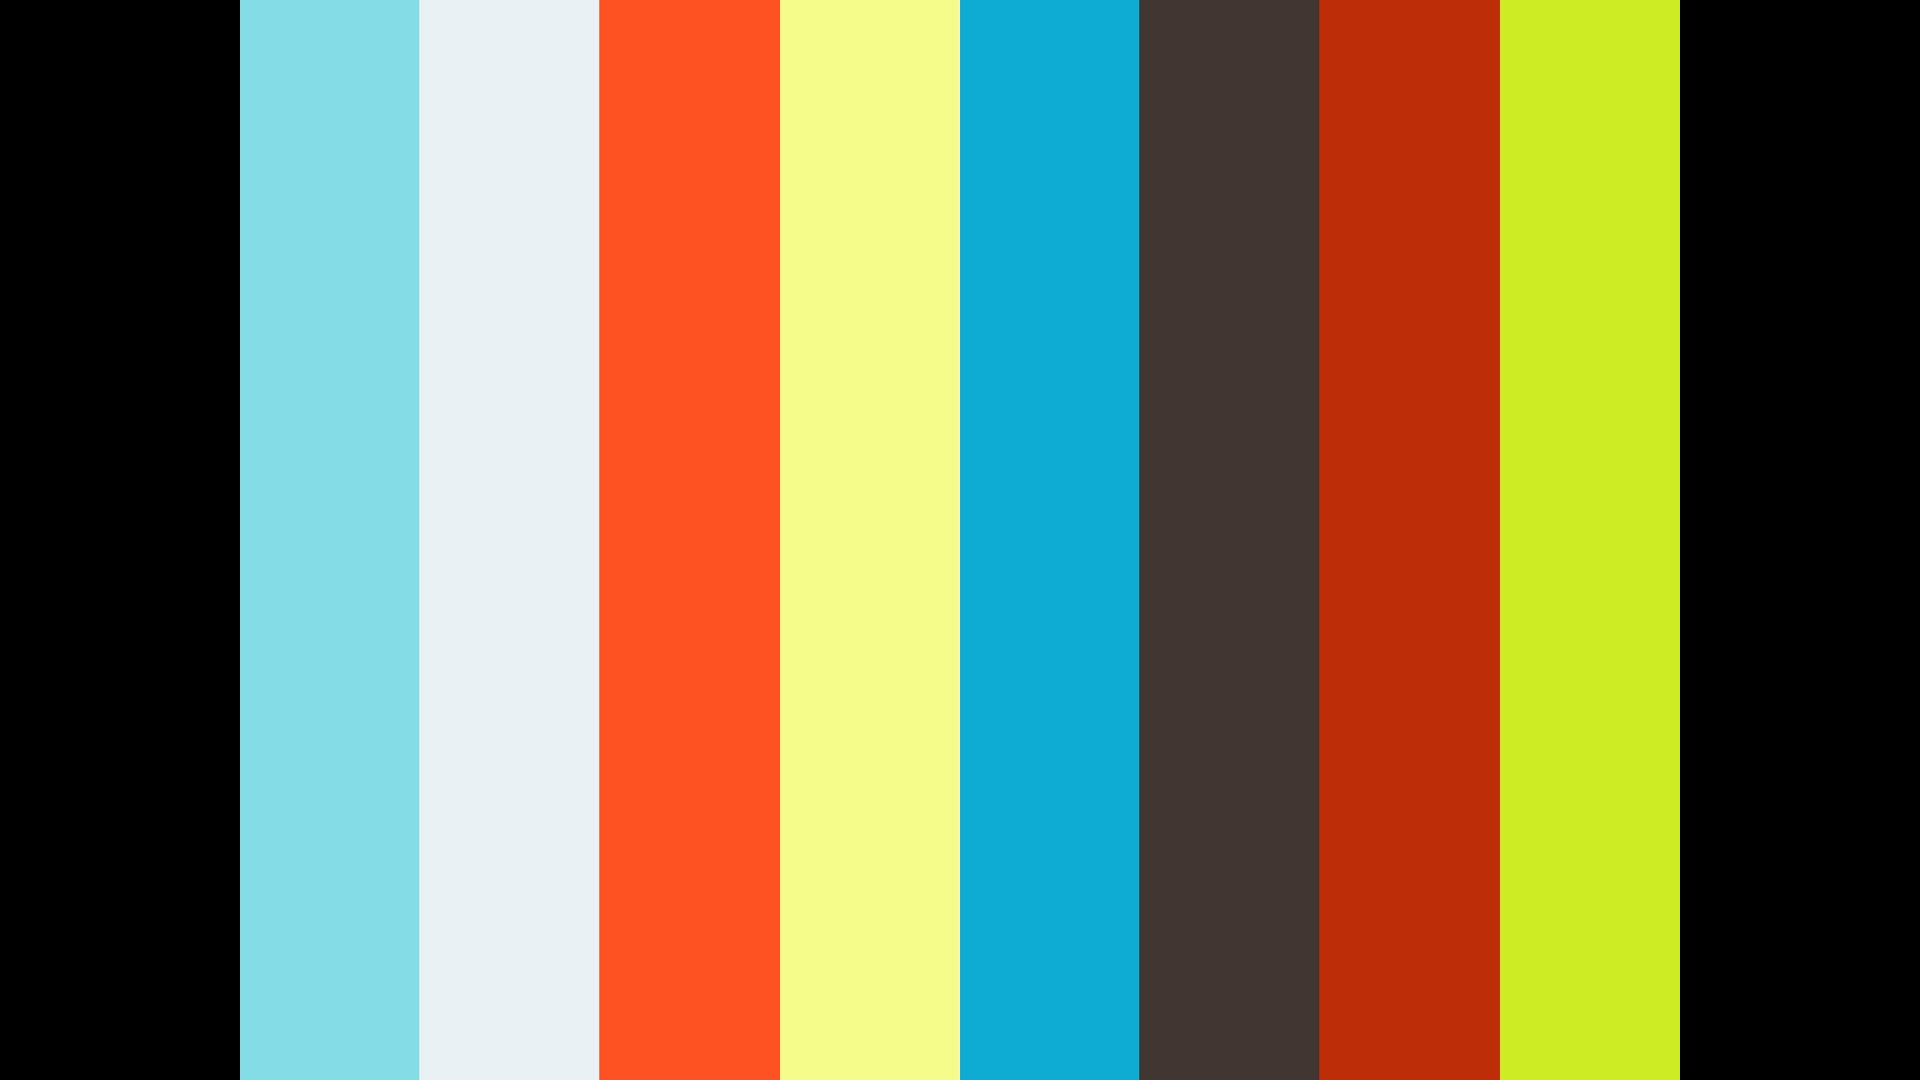 Launch of Song Fruity Lagdi Hai With Jannat Zubair & Faisu-1mp4